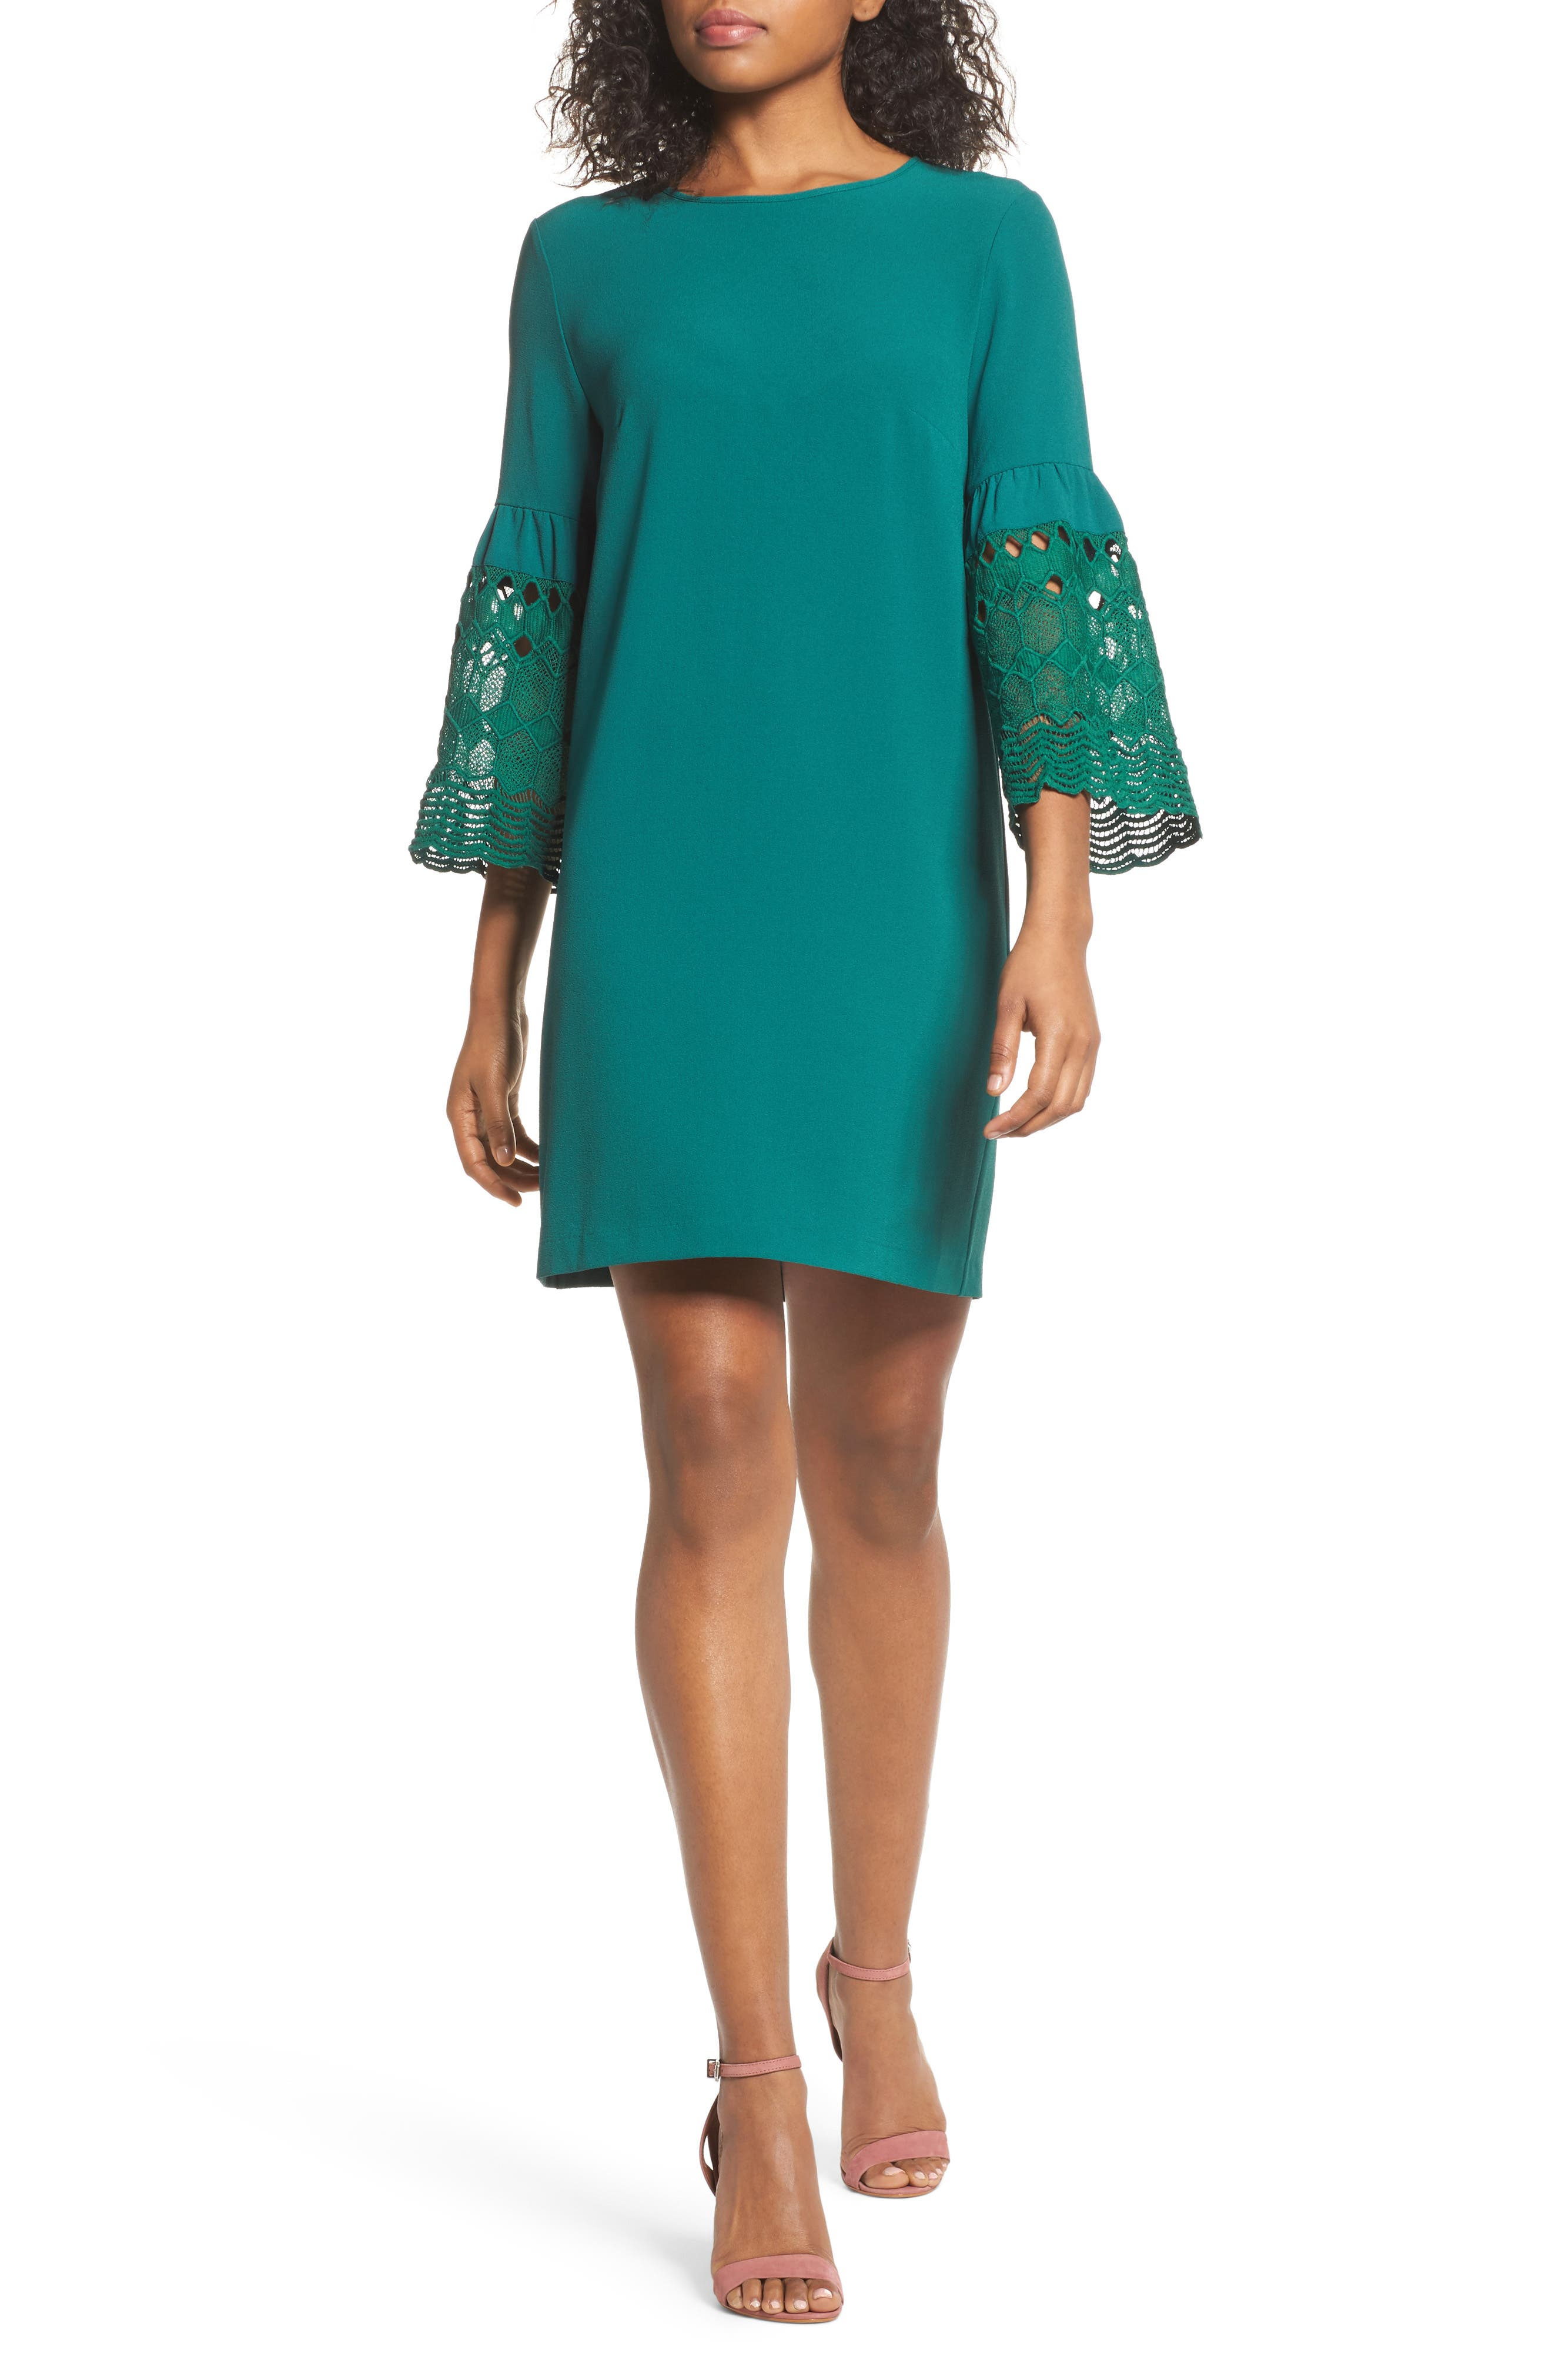 Alternate Image 1 Selected - Felicity & Coco Lace Sleeve Shift Dress (Nordstrom Exclusive)